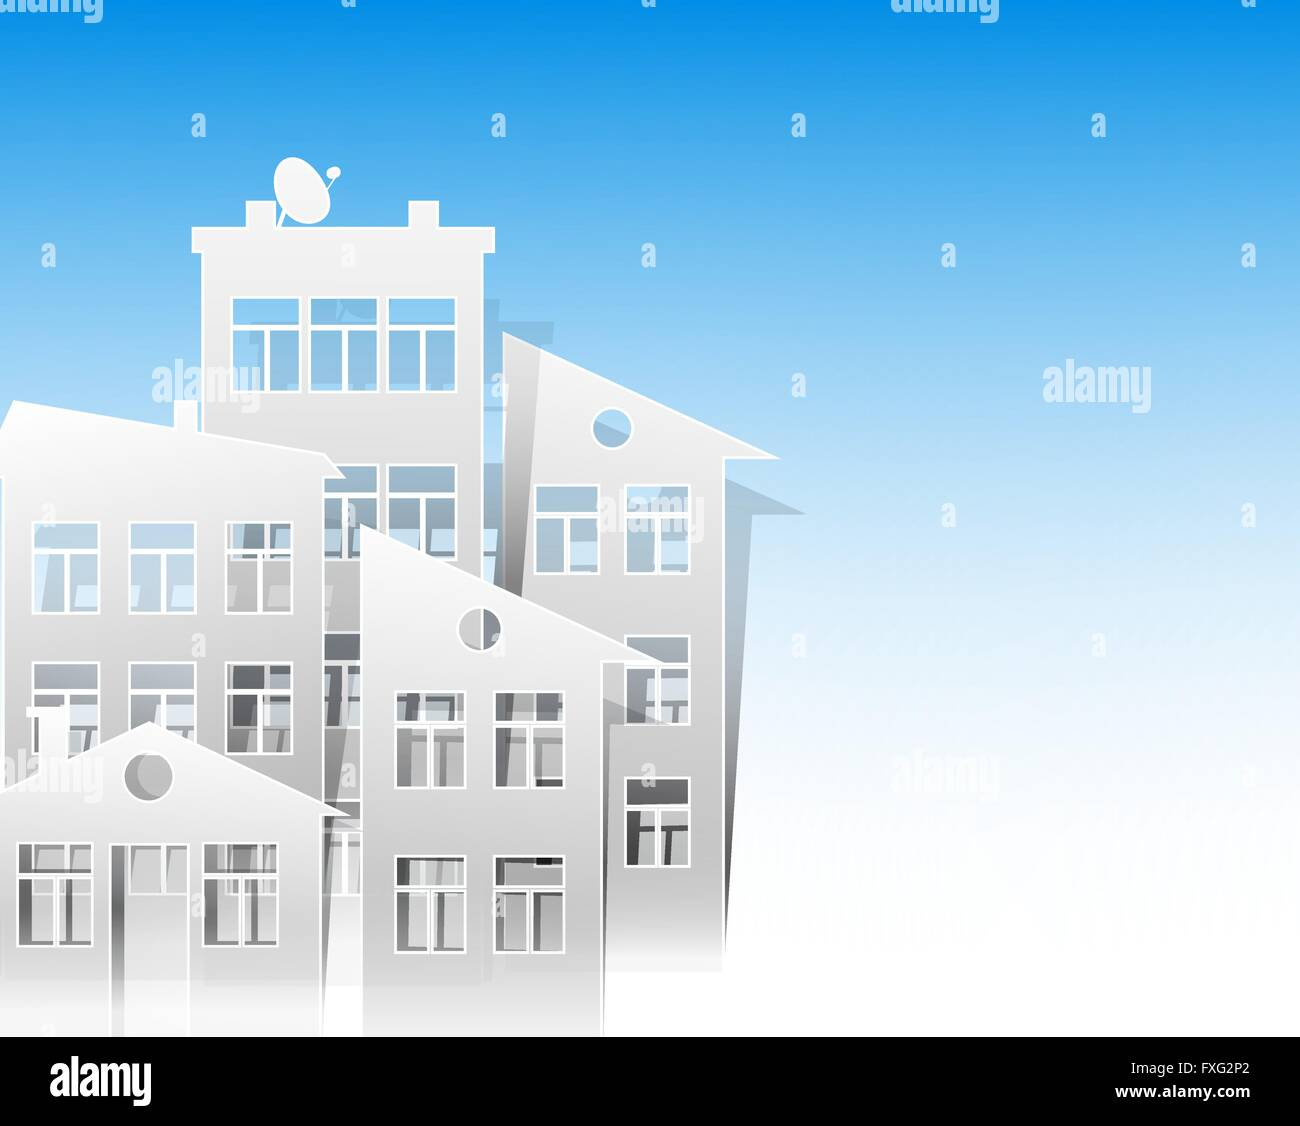 White houses paper cut out style as real estate symbols on light white houses paper cut out style as real estate symbols on light blue sky background biocorpaavc Image collections